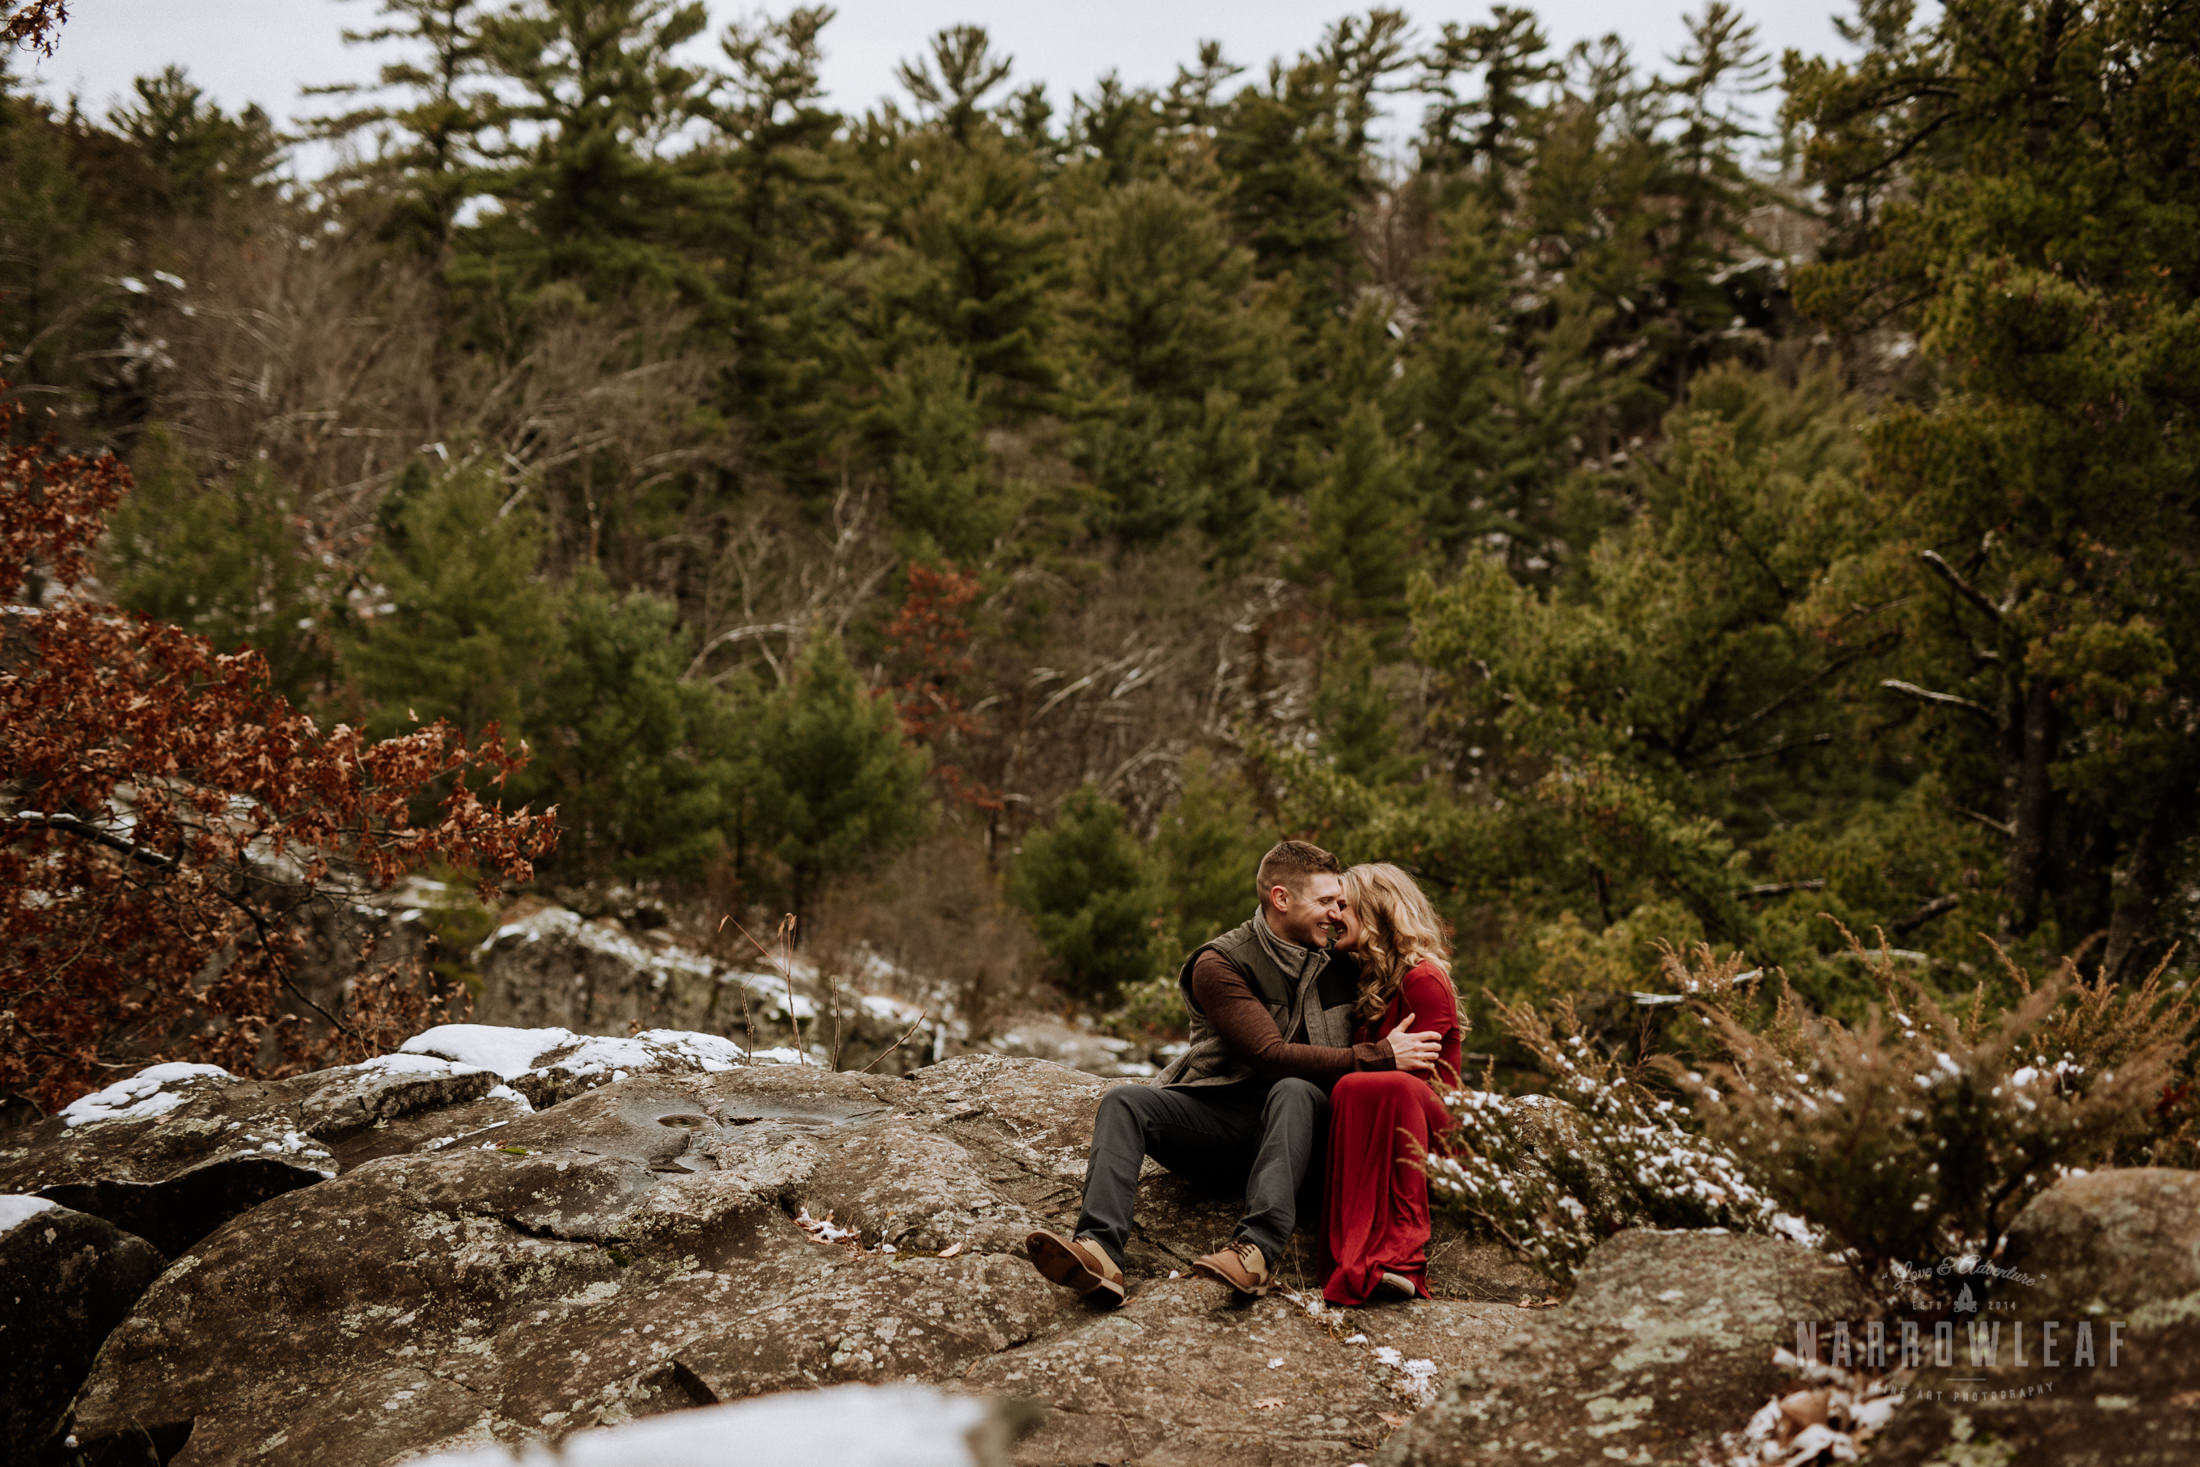 wisconsin-winter-adventure-engagement-interstate-park-bluffs-Narrowleaf_Love_and_Adventure_Photography-1716.jpg